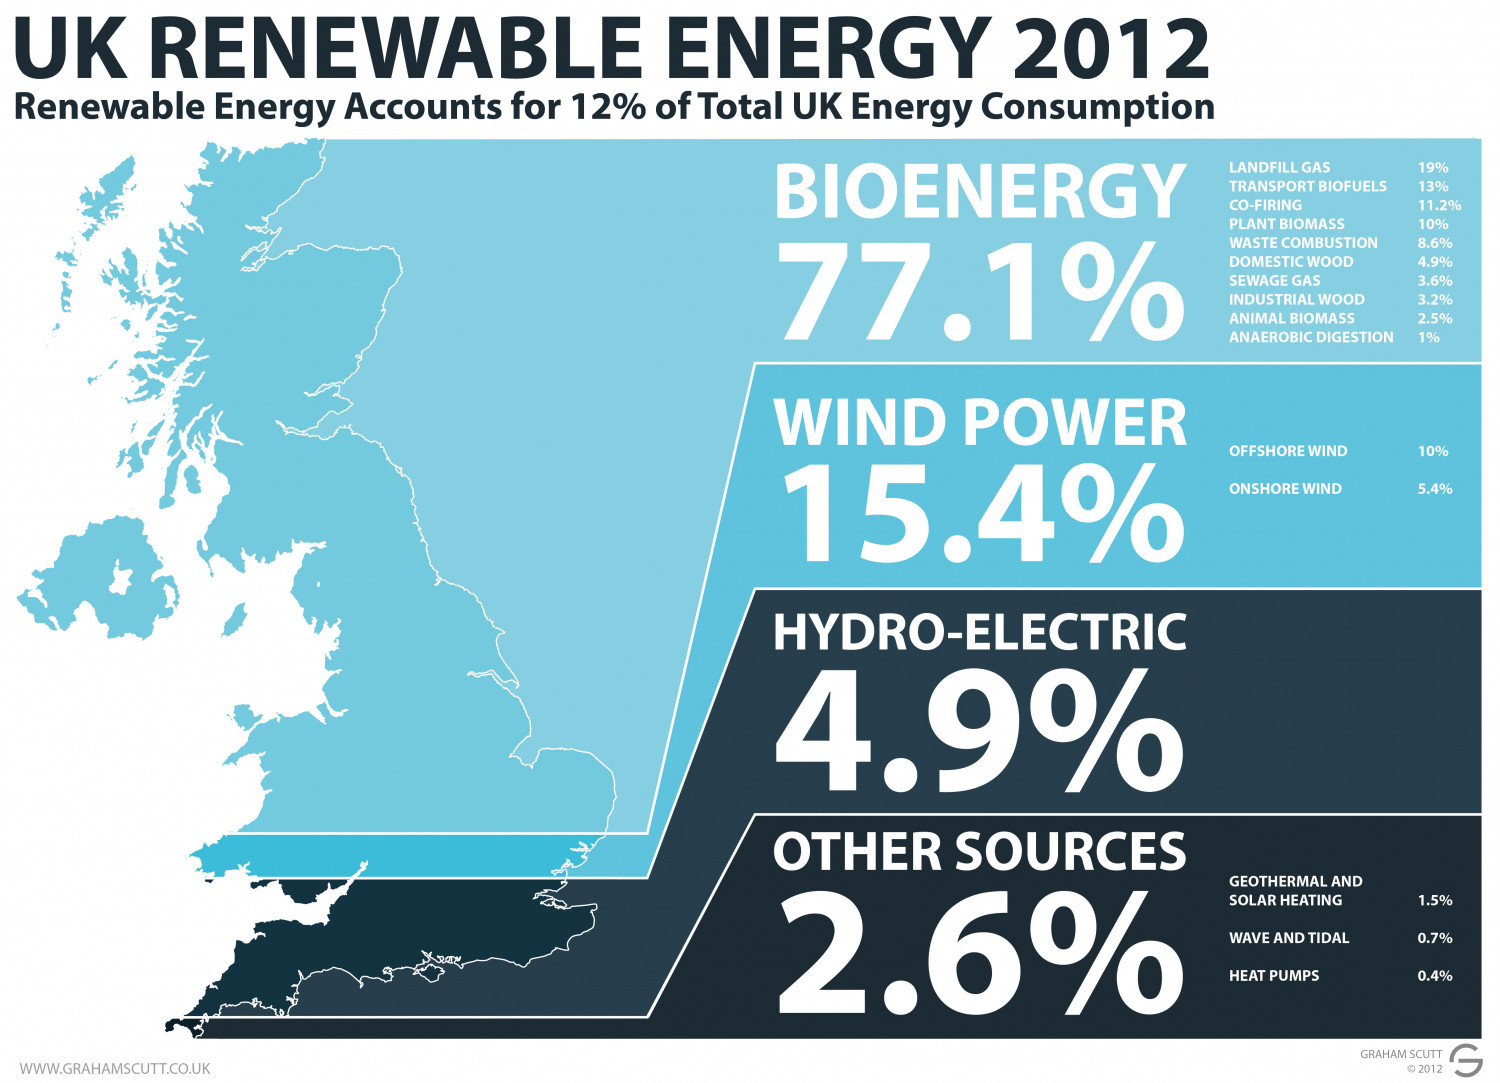 Renewable Energy Sources UK 2012 Infographic